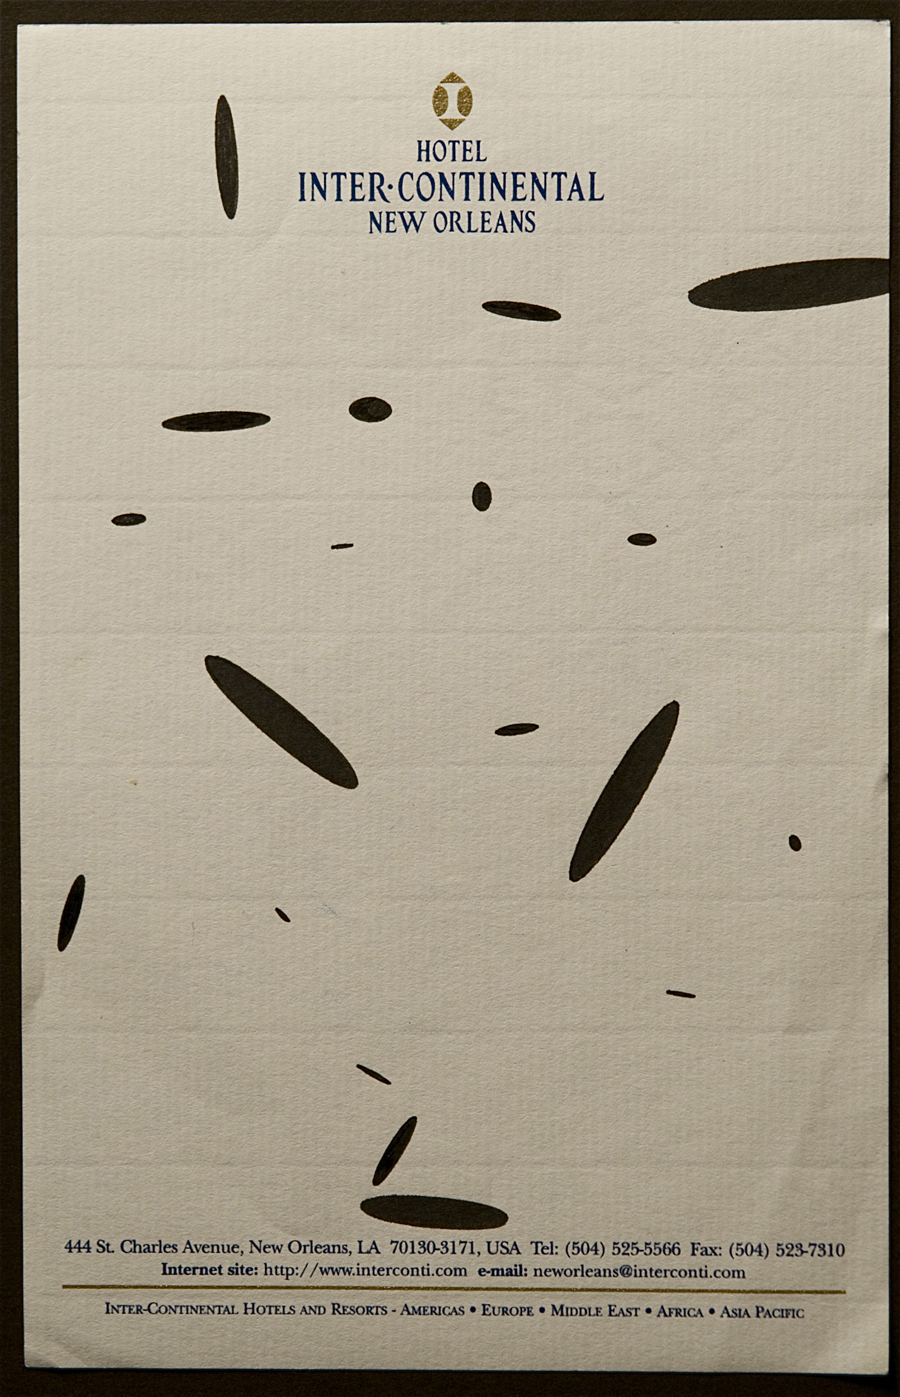 Billy Martin's automatic drawing (image courtesy of The Drawing Center)